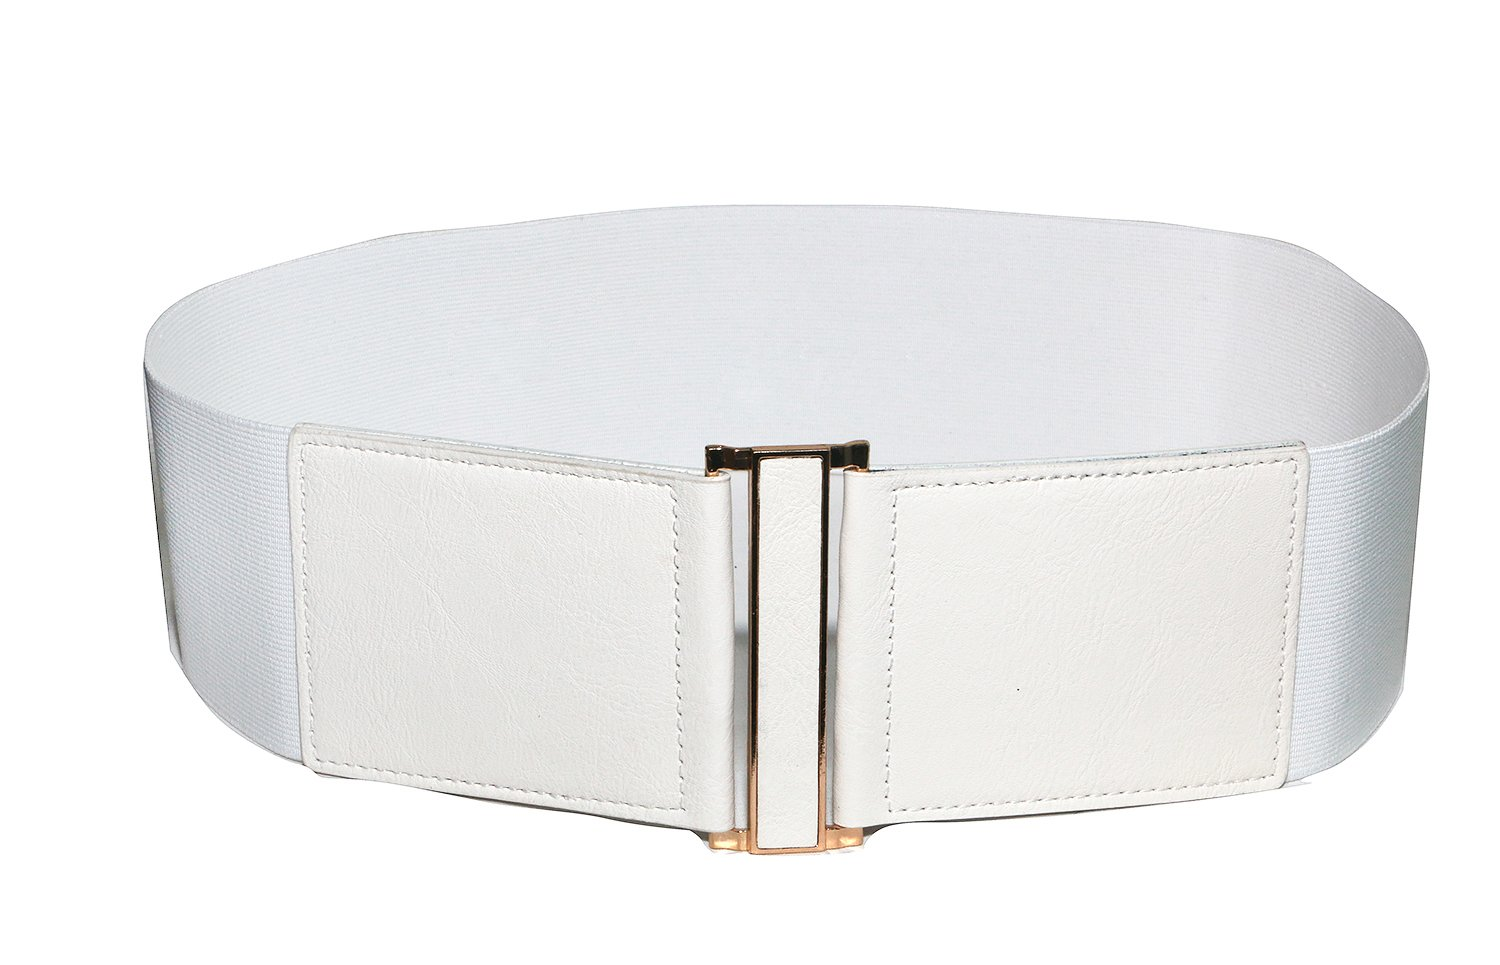 Modeway Women's Leather 3''wide Elastic Stretch Cinch Waist Belt, Metal Buckle Fashion Waistband (Large(33-36inch), White)